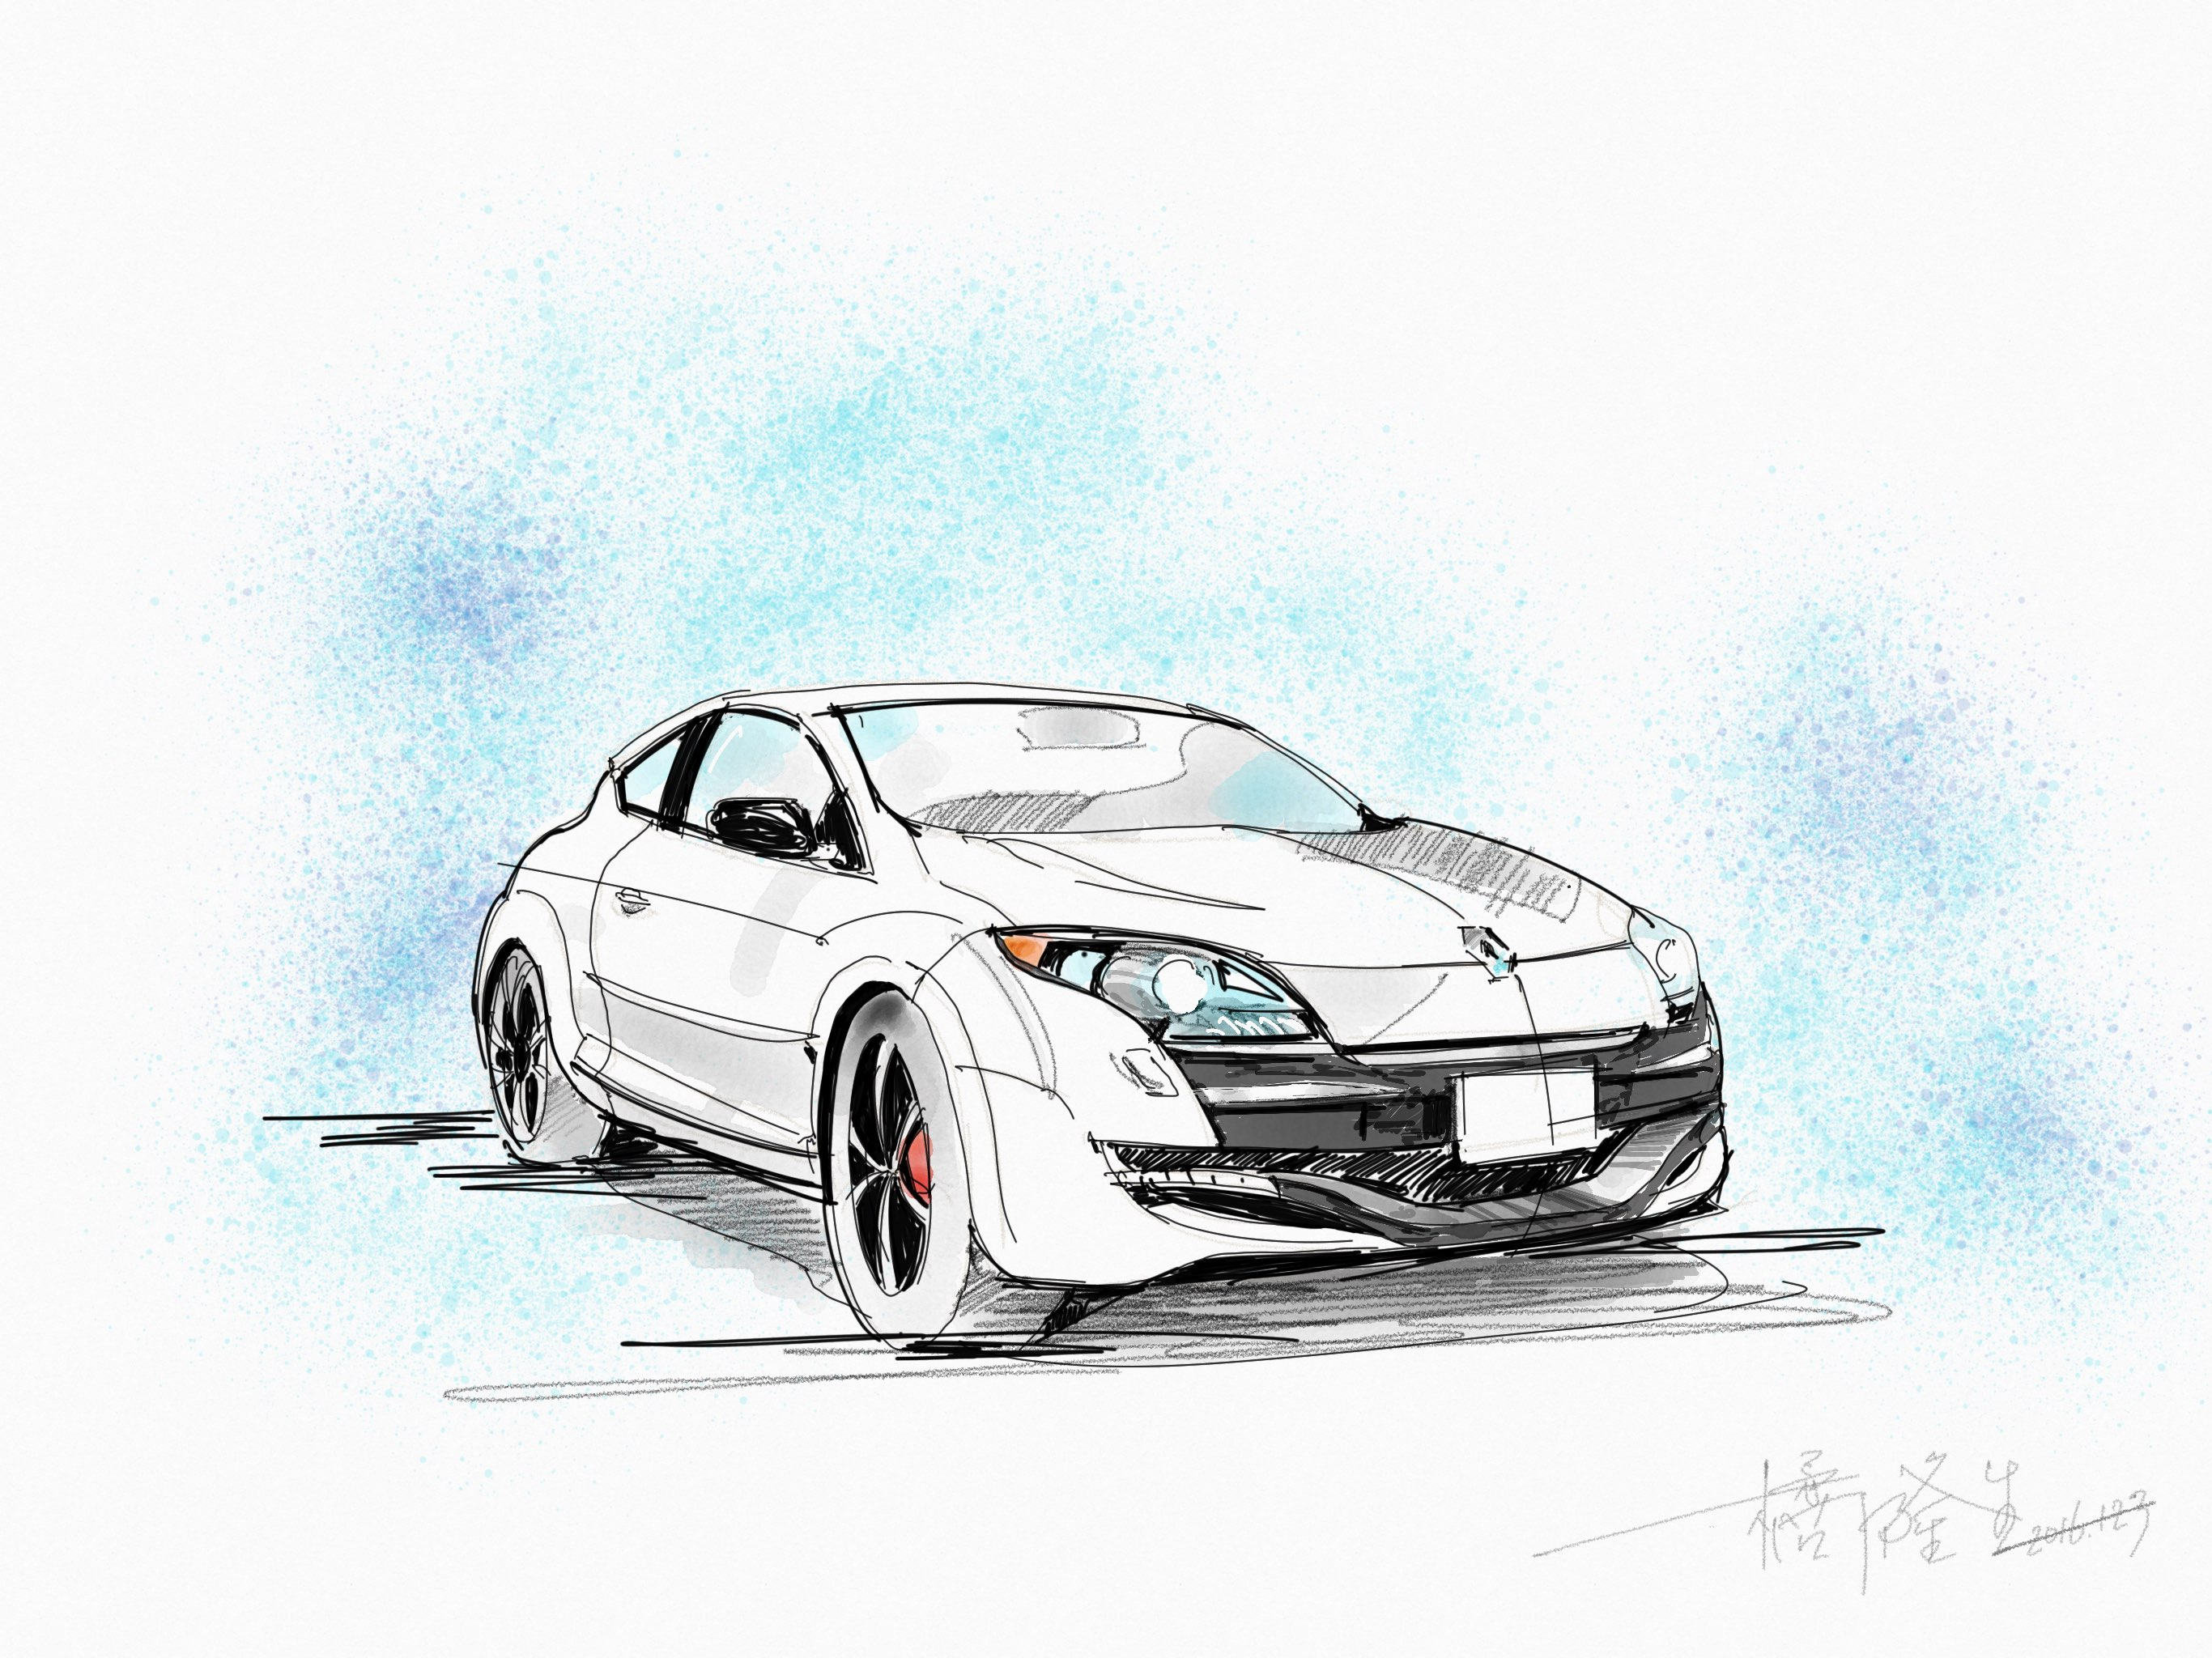 My Car made with Sketches